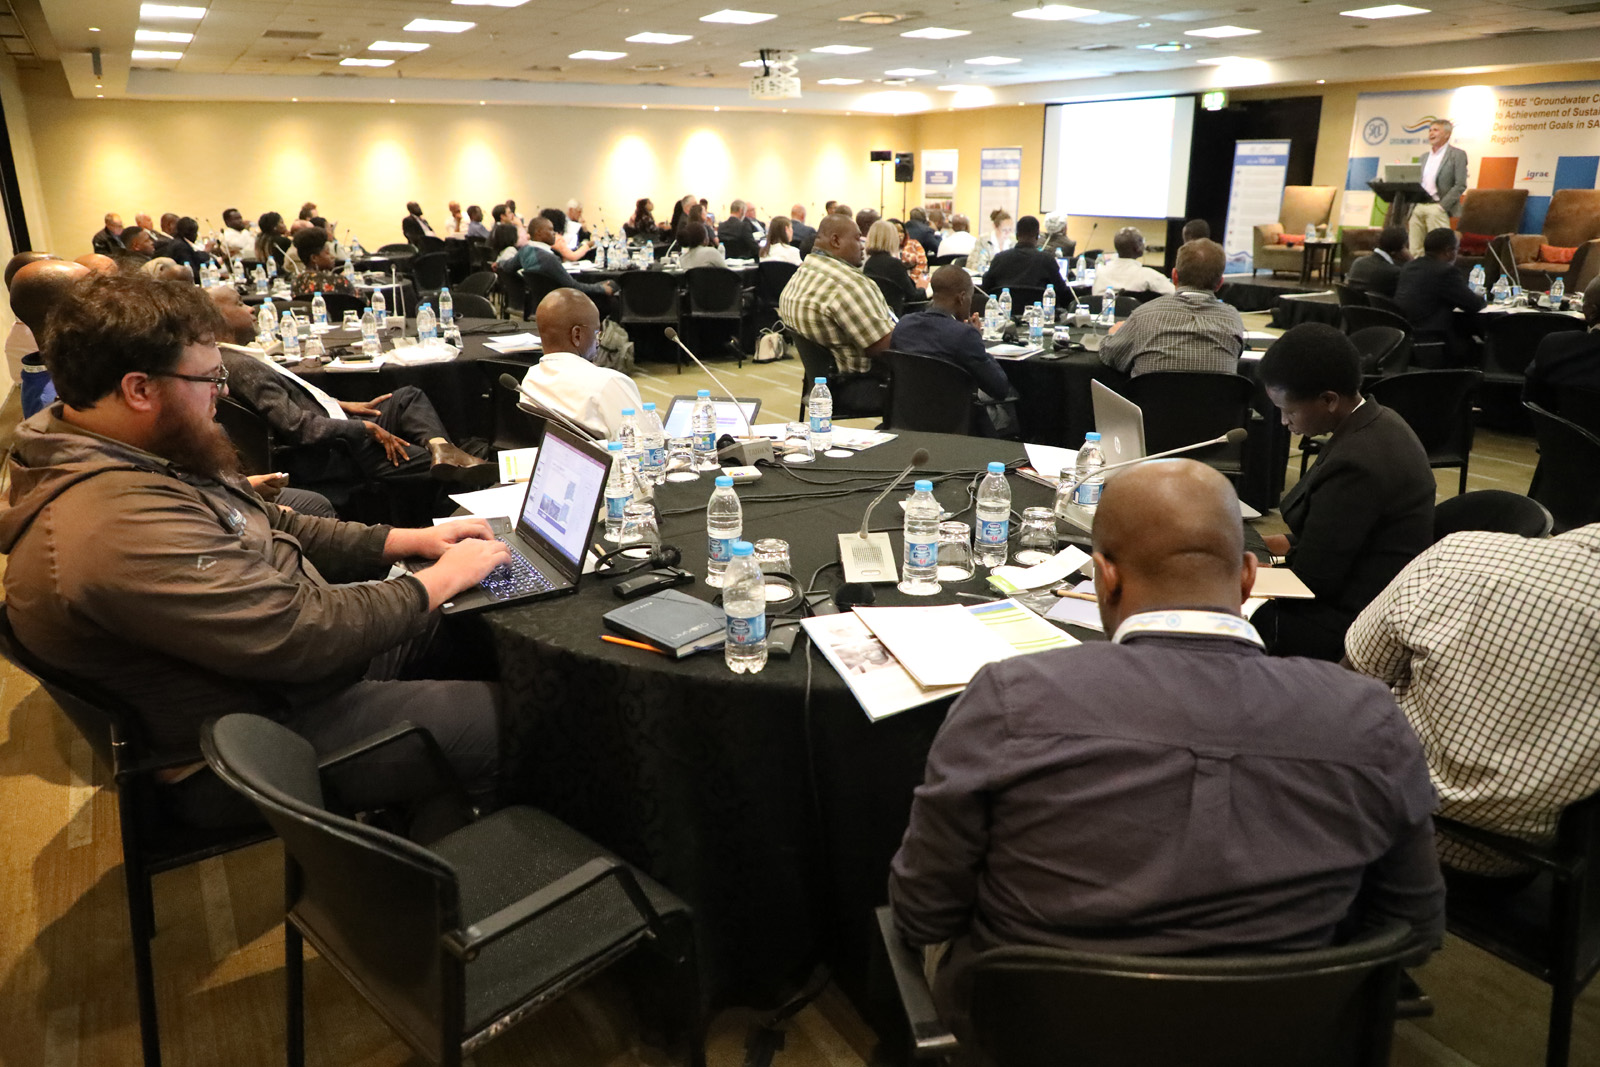 Approximately 150 delegates from the SADC region and beyond attended the conference